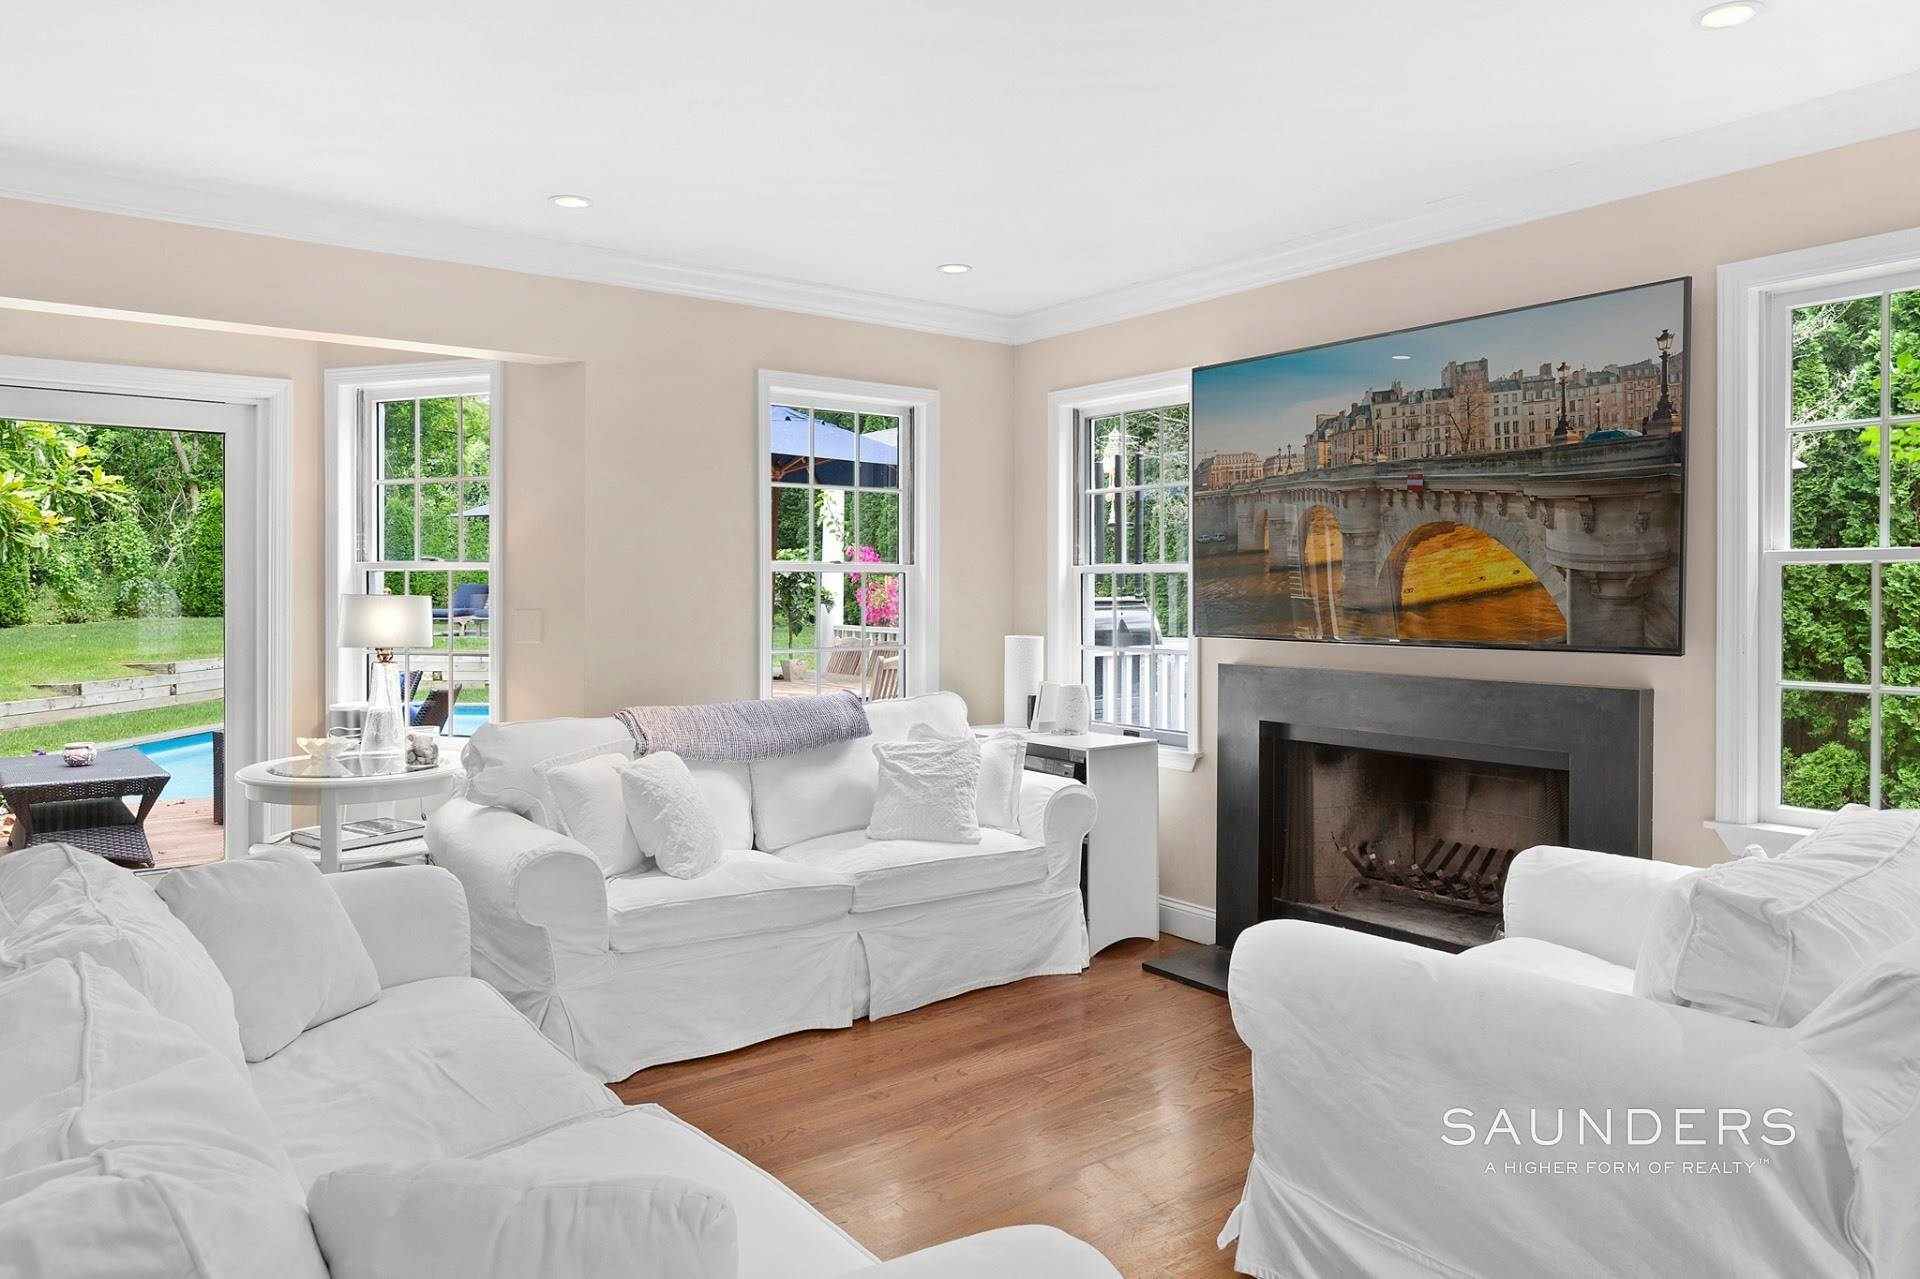 3. Single Family Homes for Sale at Once Upon A Time, In East Hampton Village... 156 Montauk Highway, East Hampton, East Hampton Town, NY 11937